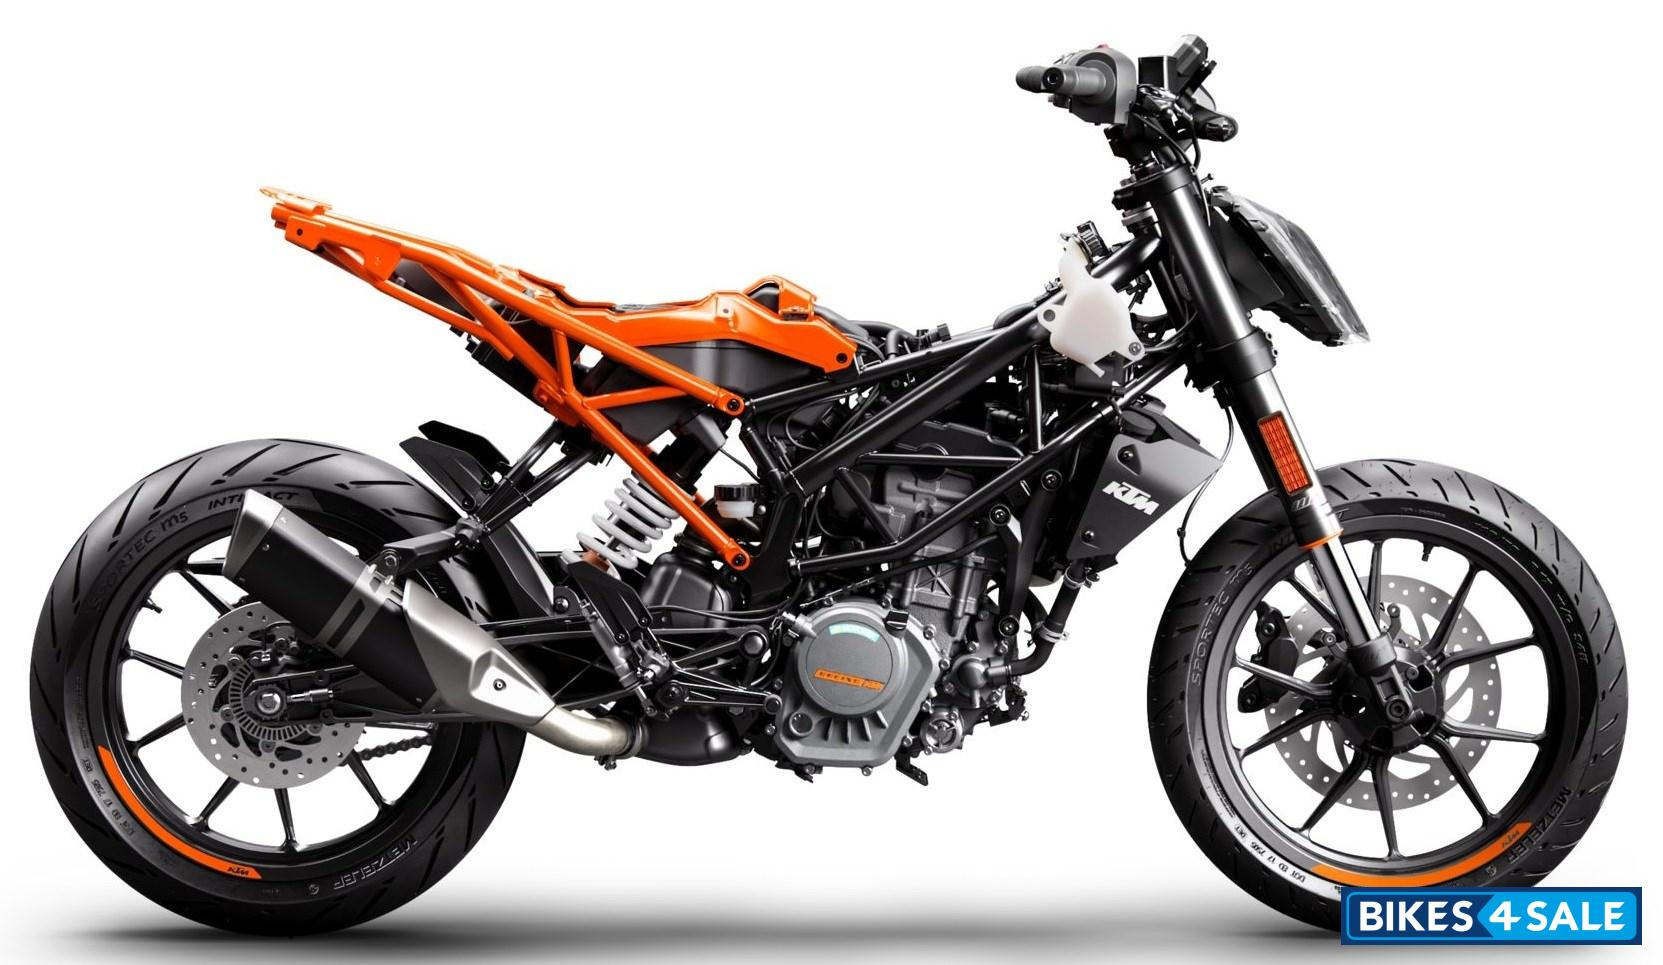 Ktm duke 200 review uk dating 9